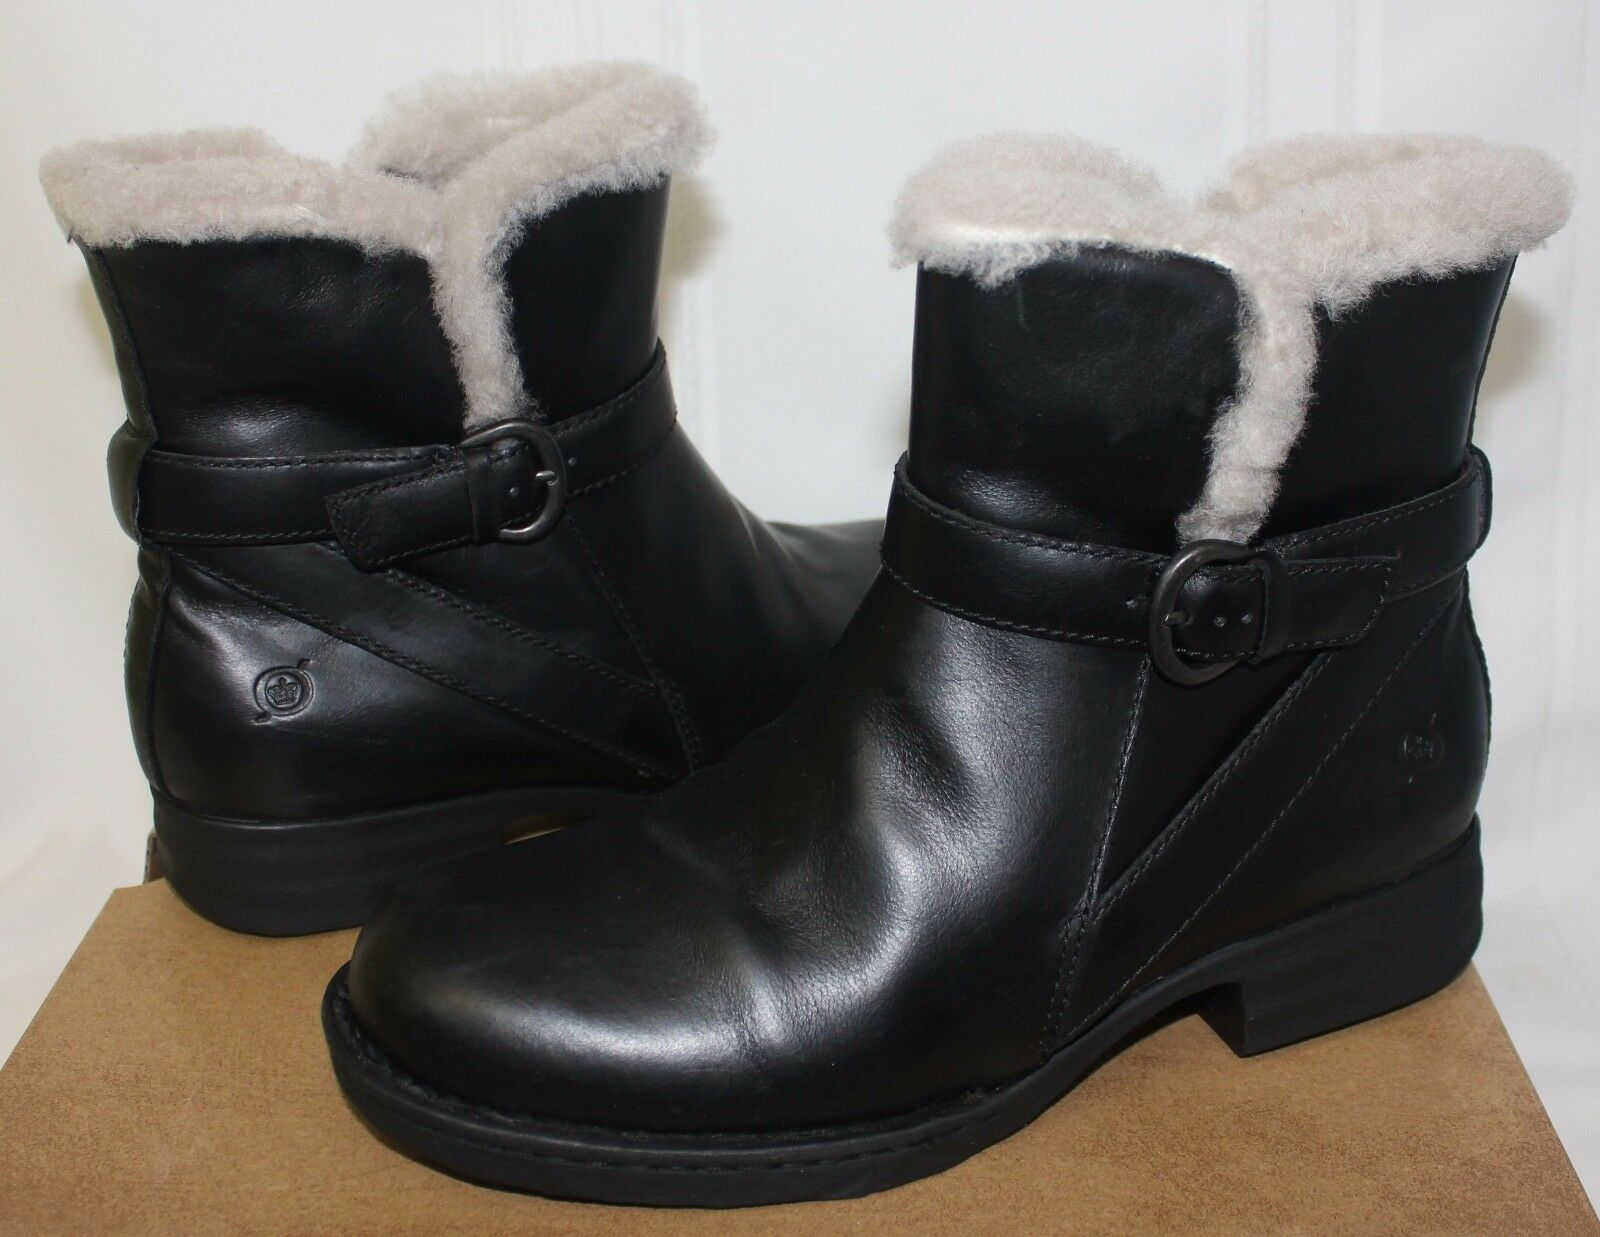 Born Women's Kaia Boots Black Leather Genuine Shearling lined New With Box